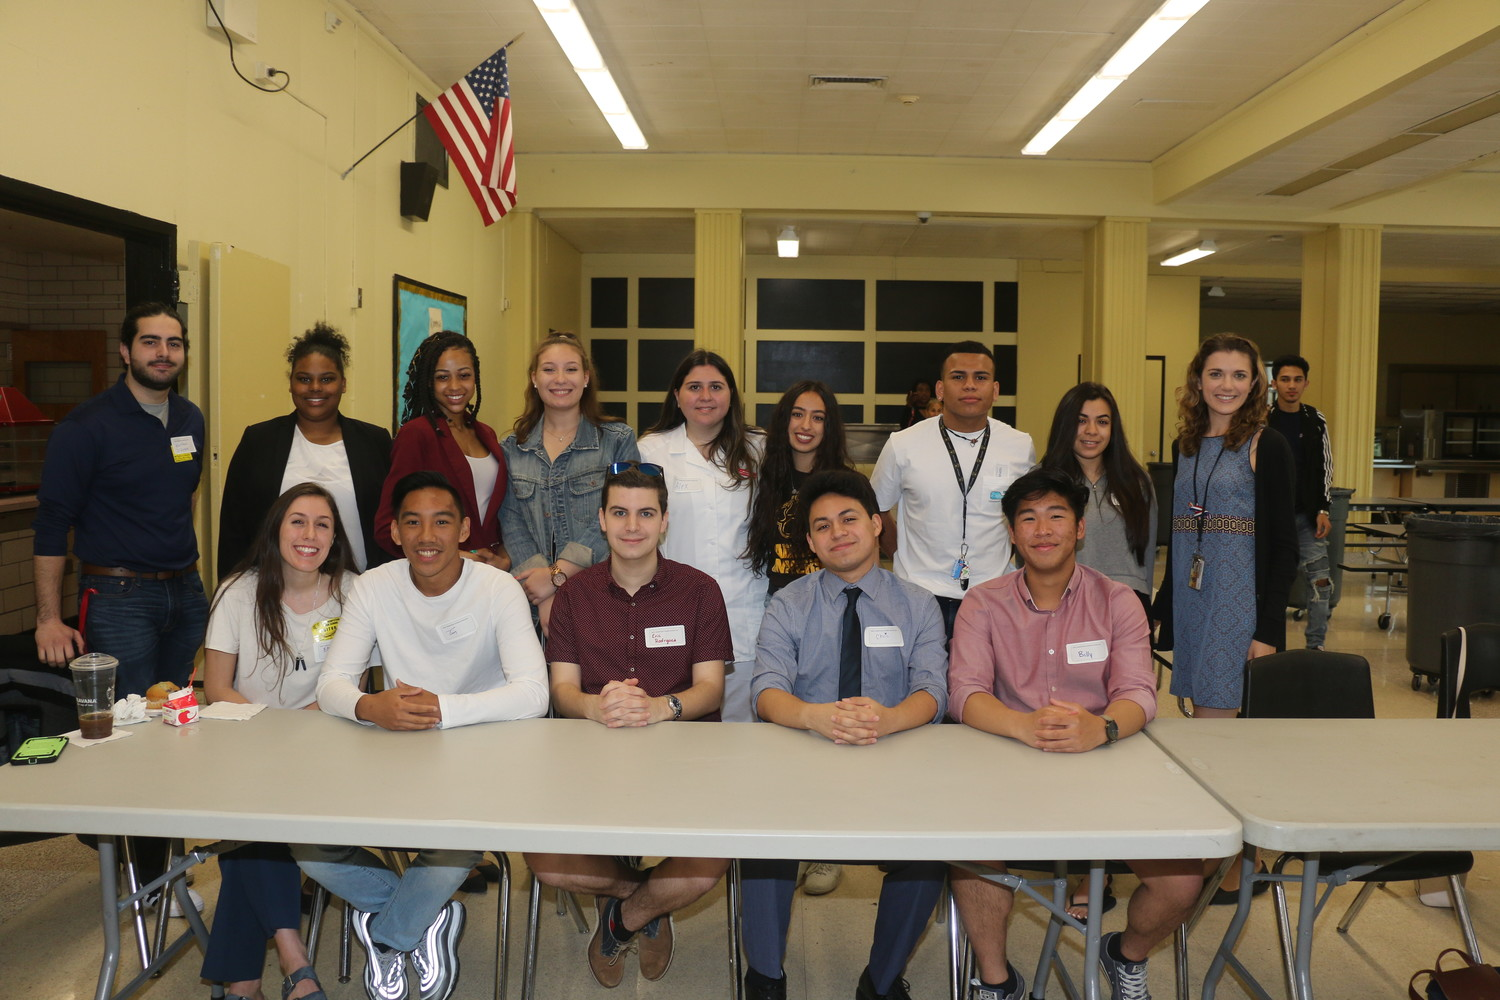 A group of West Hempstead High School alumni returned to their alma mater on May 23 to speak with current students.